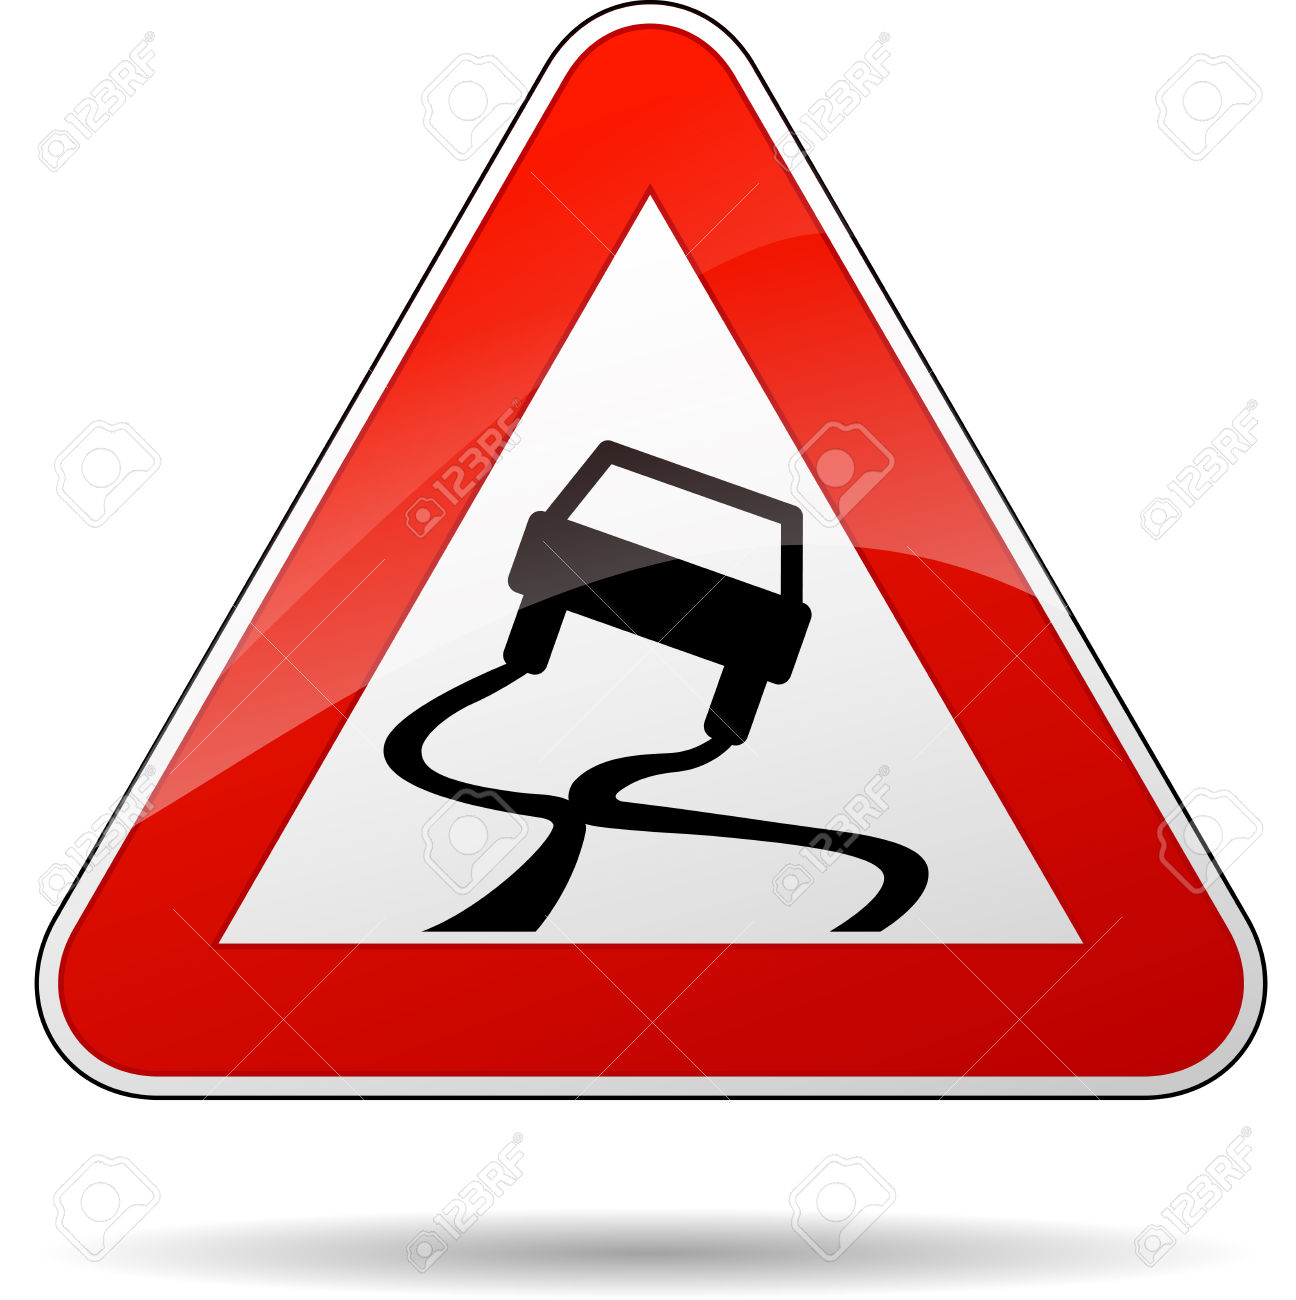 Vector Illustration Of Triangle Traffic Sign For Slippery Road.